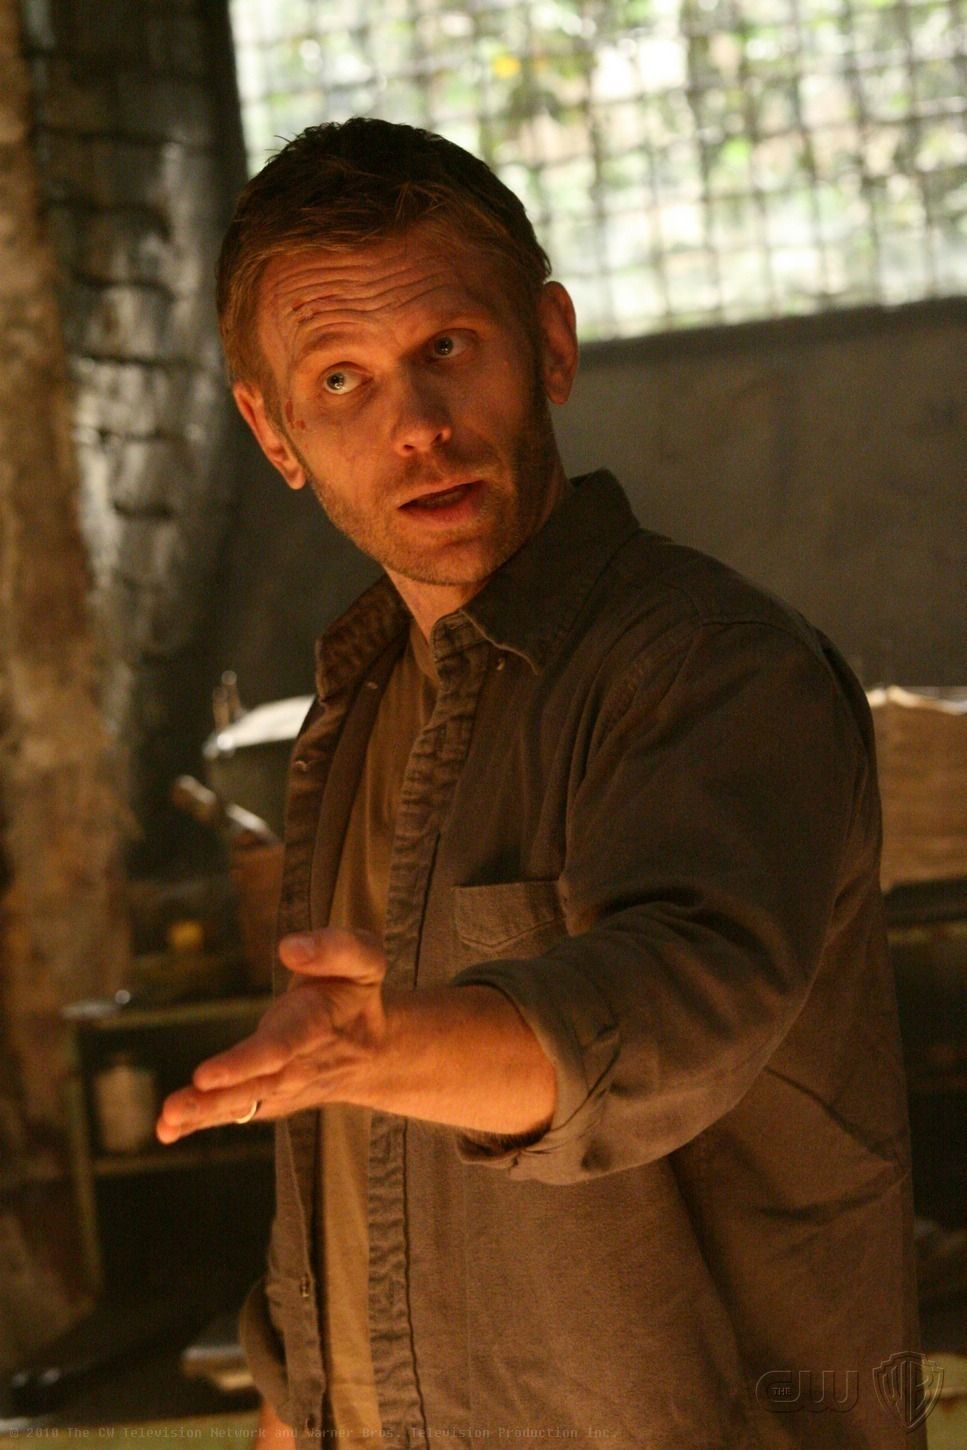 mark pellegrino wifemark pellegrino gif, mark pellegrino age, mark pellegrino and jared padalecki, mark pellegrino sweet transvestite, mark pellegrino tracy aziz, mark pellegrino vampire diaries, mark pellegrino is back, mark pellegrino insta, марк пеллегрино декстер, mark pellegrino imdb, mark pellegrino daughter, mark pellegrino instagram, mark pellegrino supernatural, mark pellegrino wikipedia, mark pellegrino tumblr gif, mark pellegrino no holds barred, mark pellegrino address, mark pellegrino the returned, mark pellegrino wife